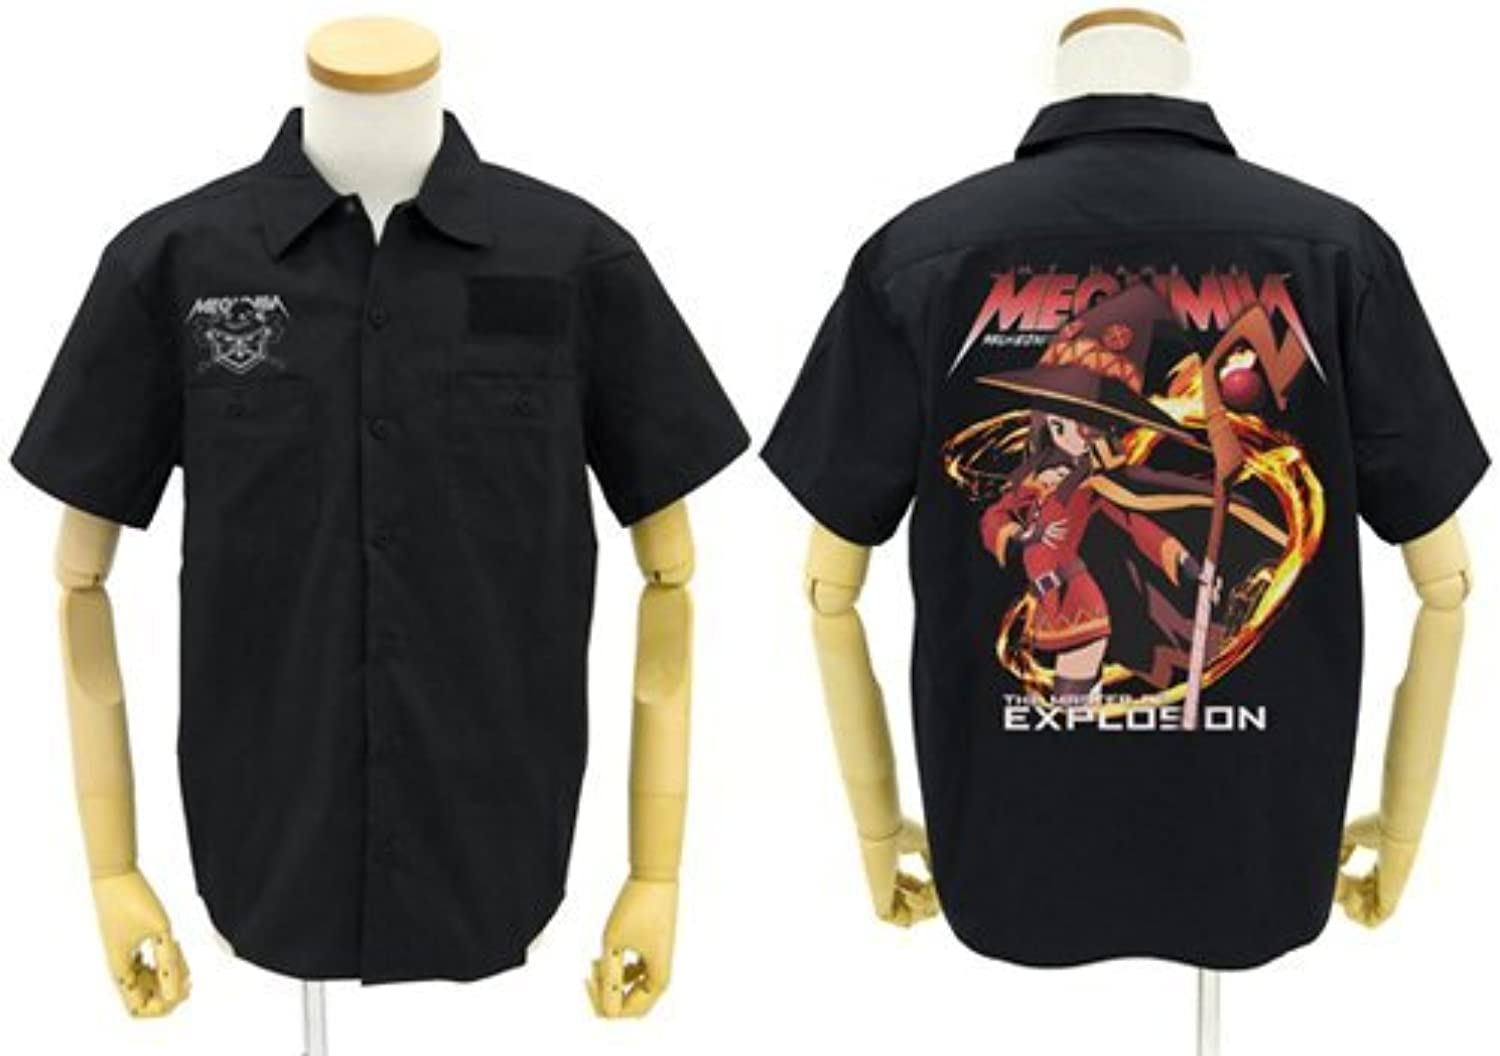 40% de descuento Megumin full Color work work work shirt negro M Talla blessing to this wonderful world  elige tu favorito